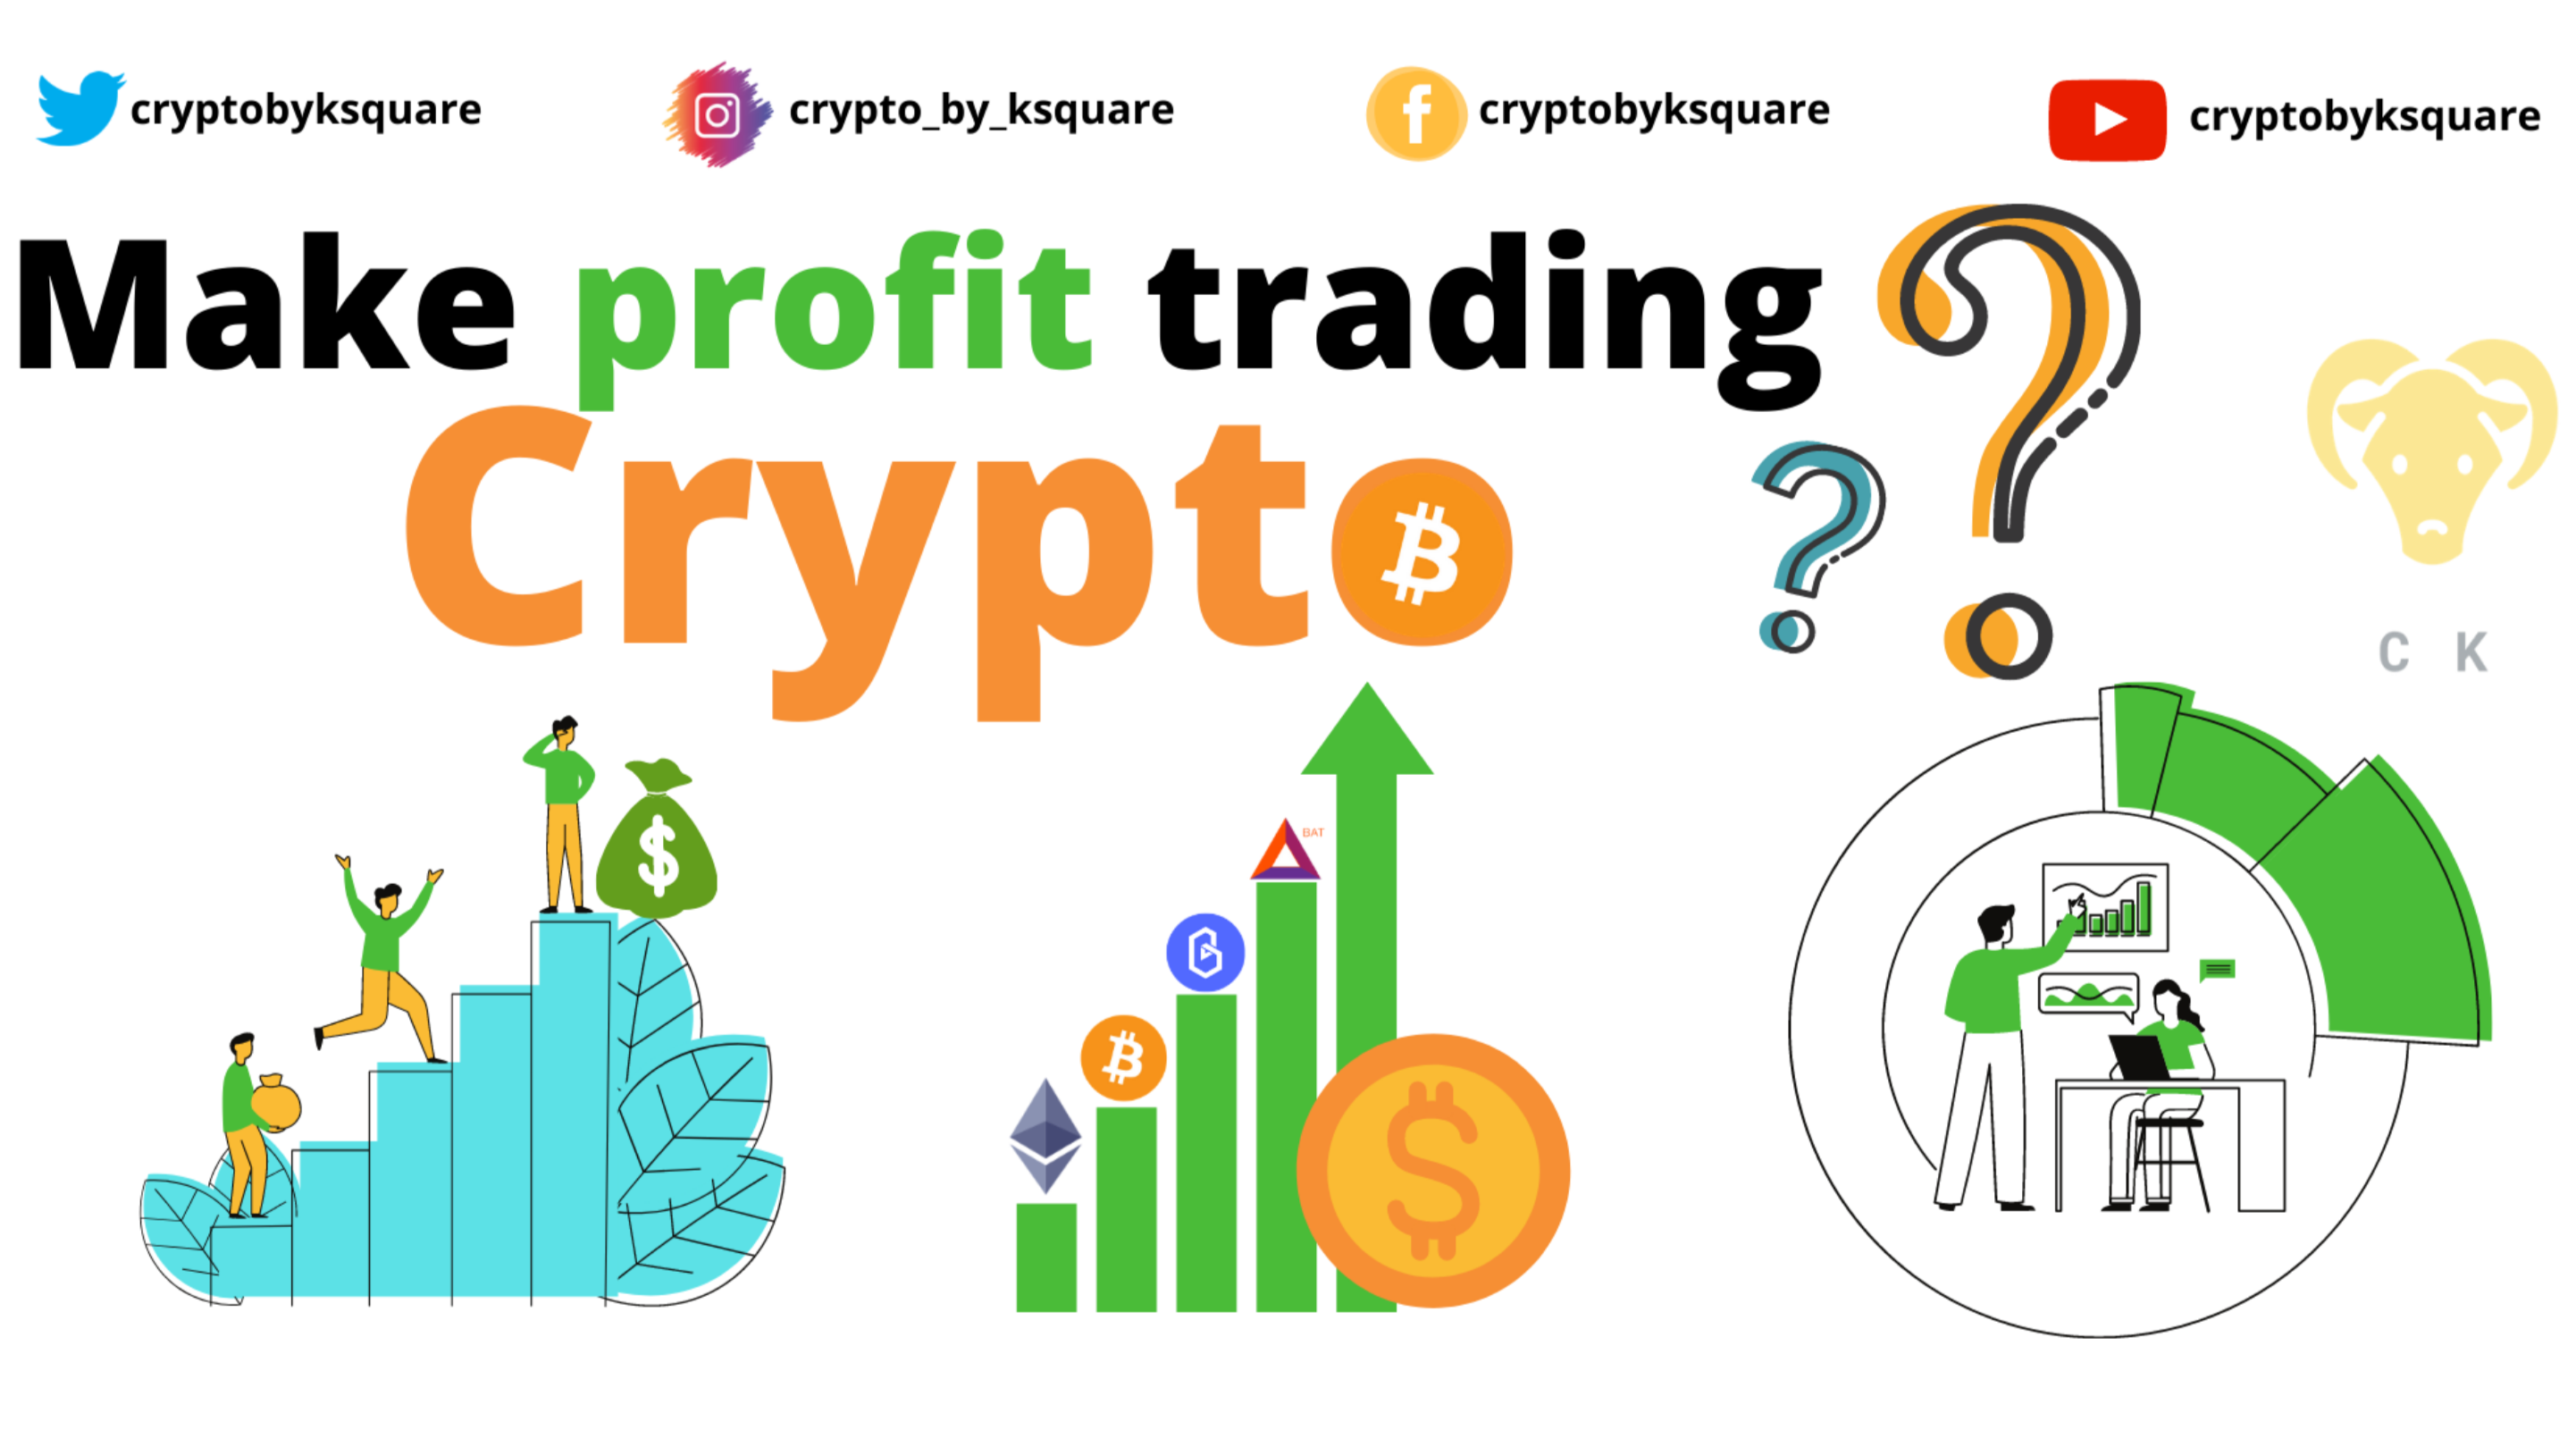 cryptocurrency bitcoin ethereum trading using 3 best indicators to trade cryptocurencies and altcoin like bat brave polkadot